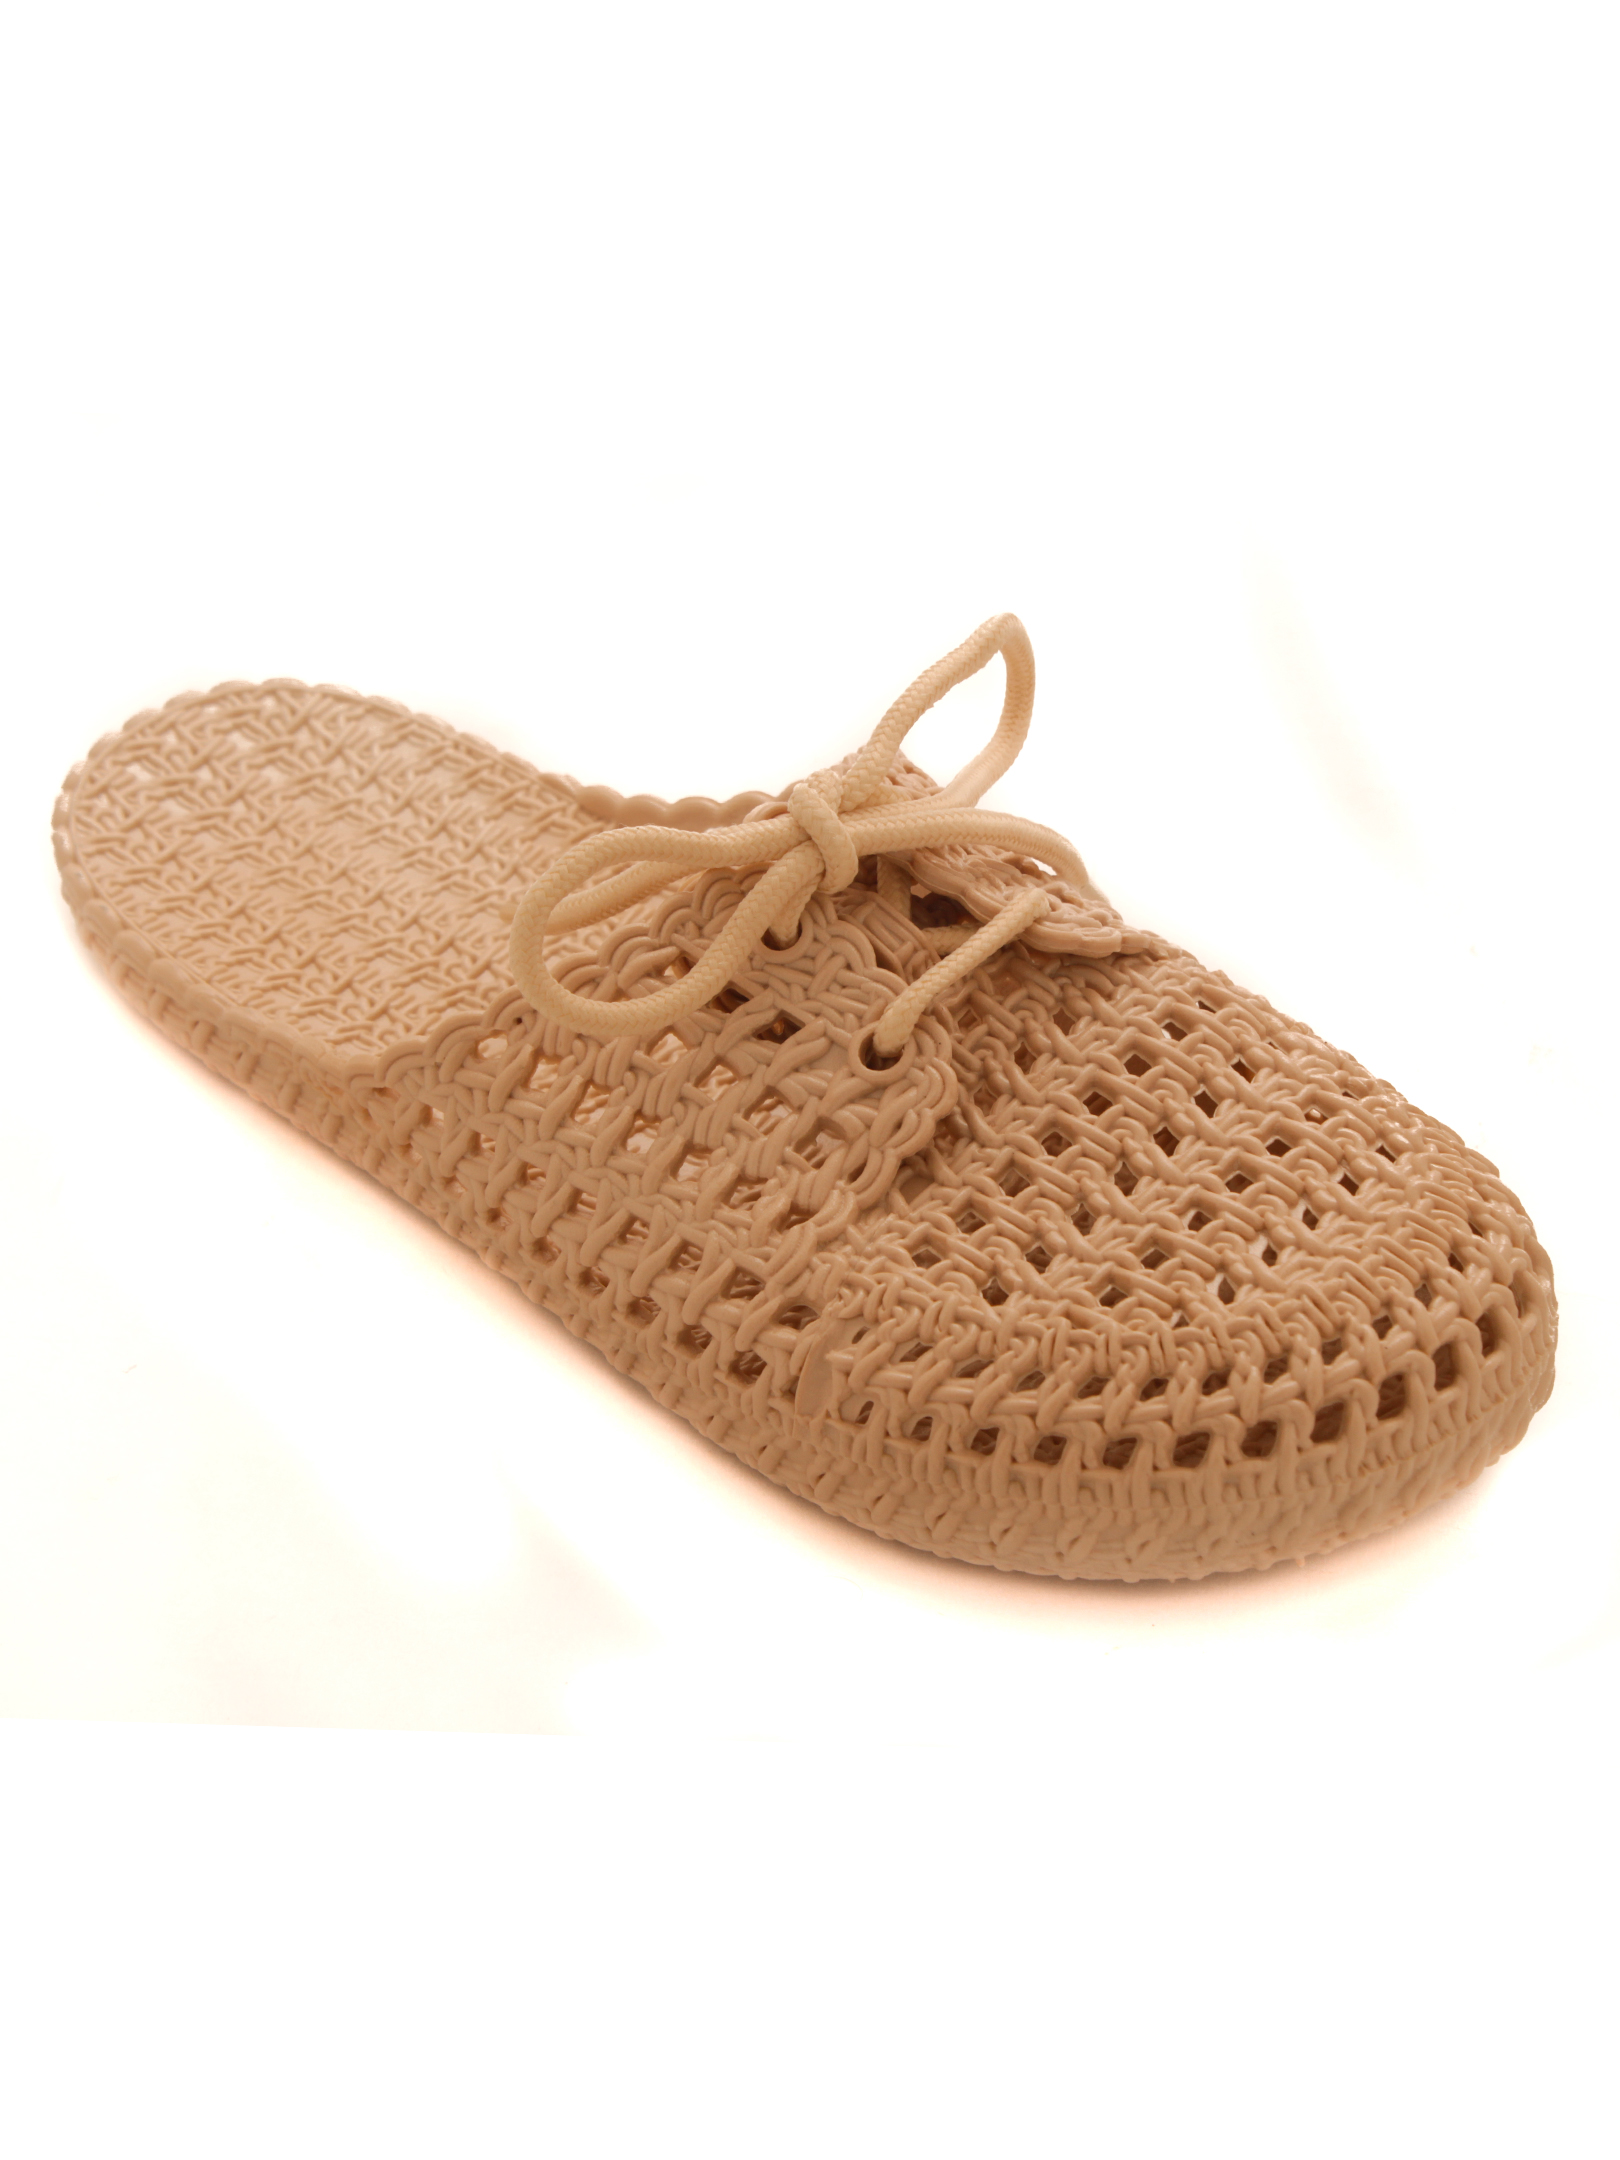 Trends & Trades   Trends & Trades Anti Slip Natural Women Clogs